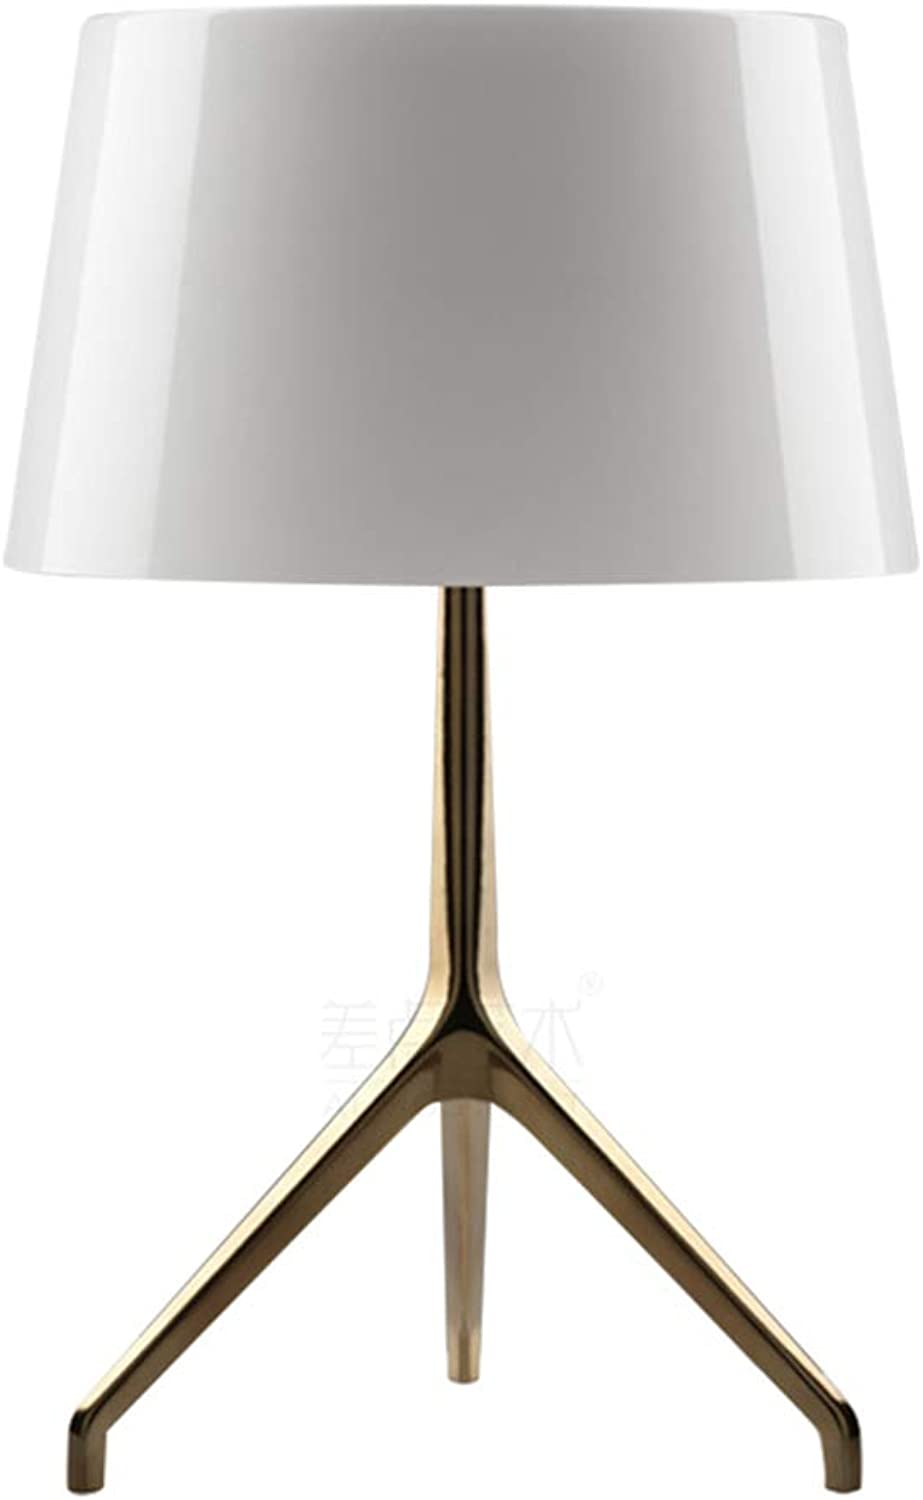 Noble.store Table Lamp Simple gold Hardware Art Desk Lamp Creative Stainless Steel Table Lamp Triangle Study Room Reading Lamp Desk -4628 Table lamp